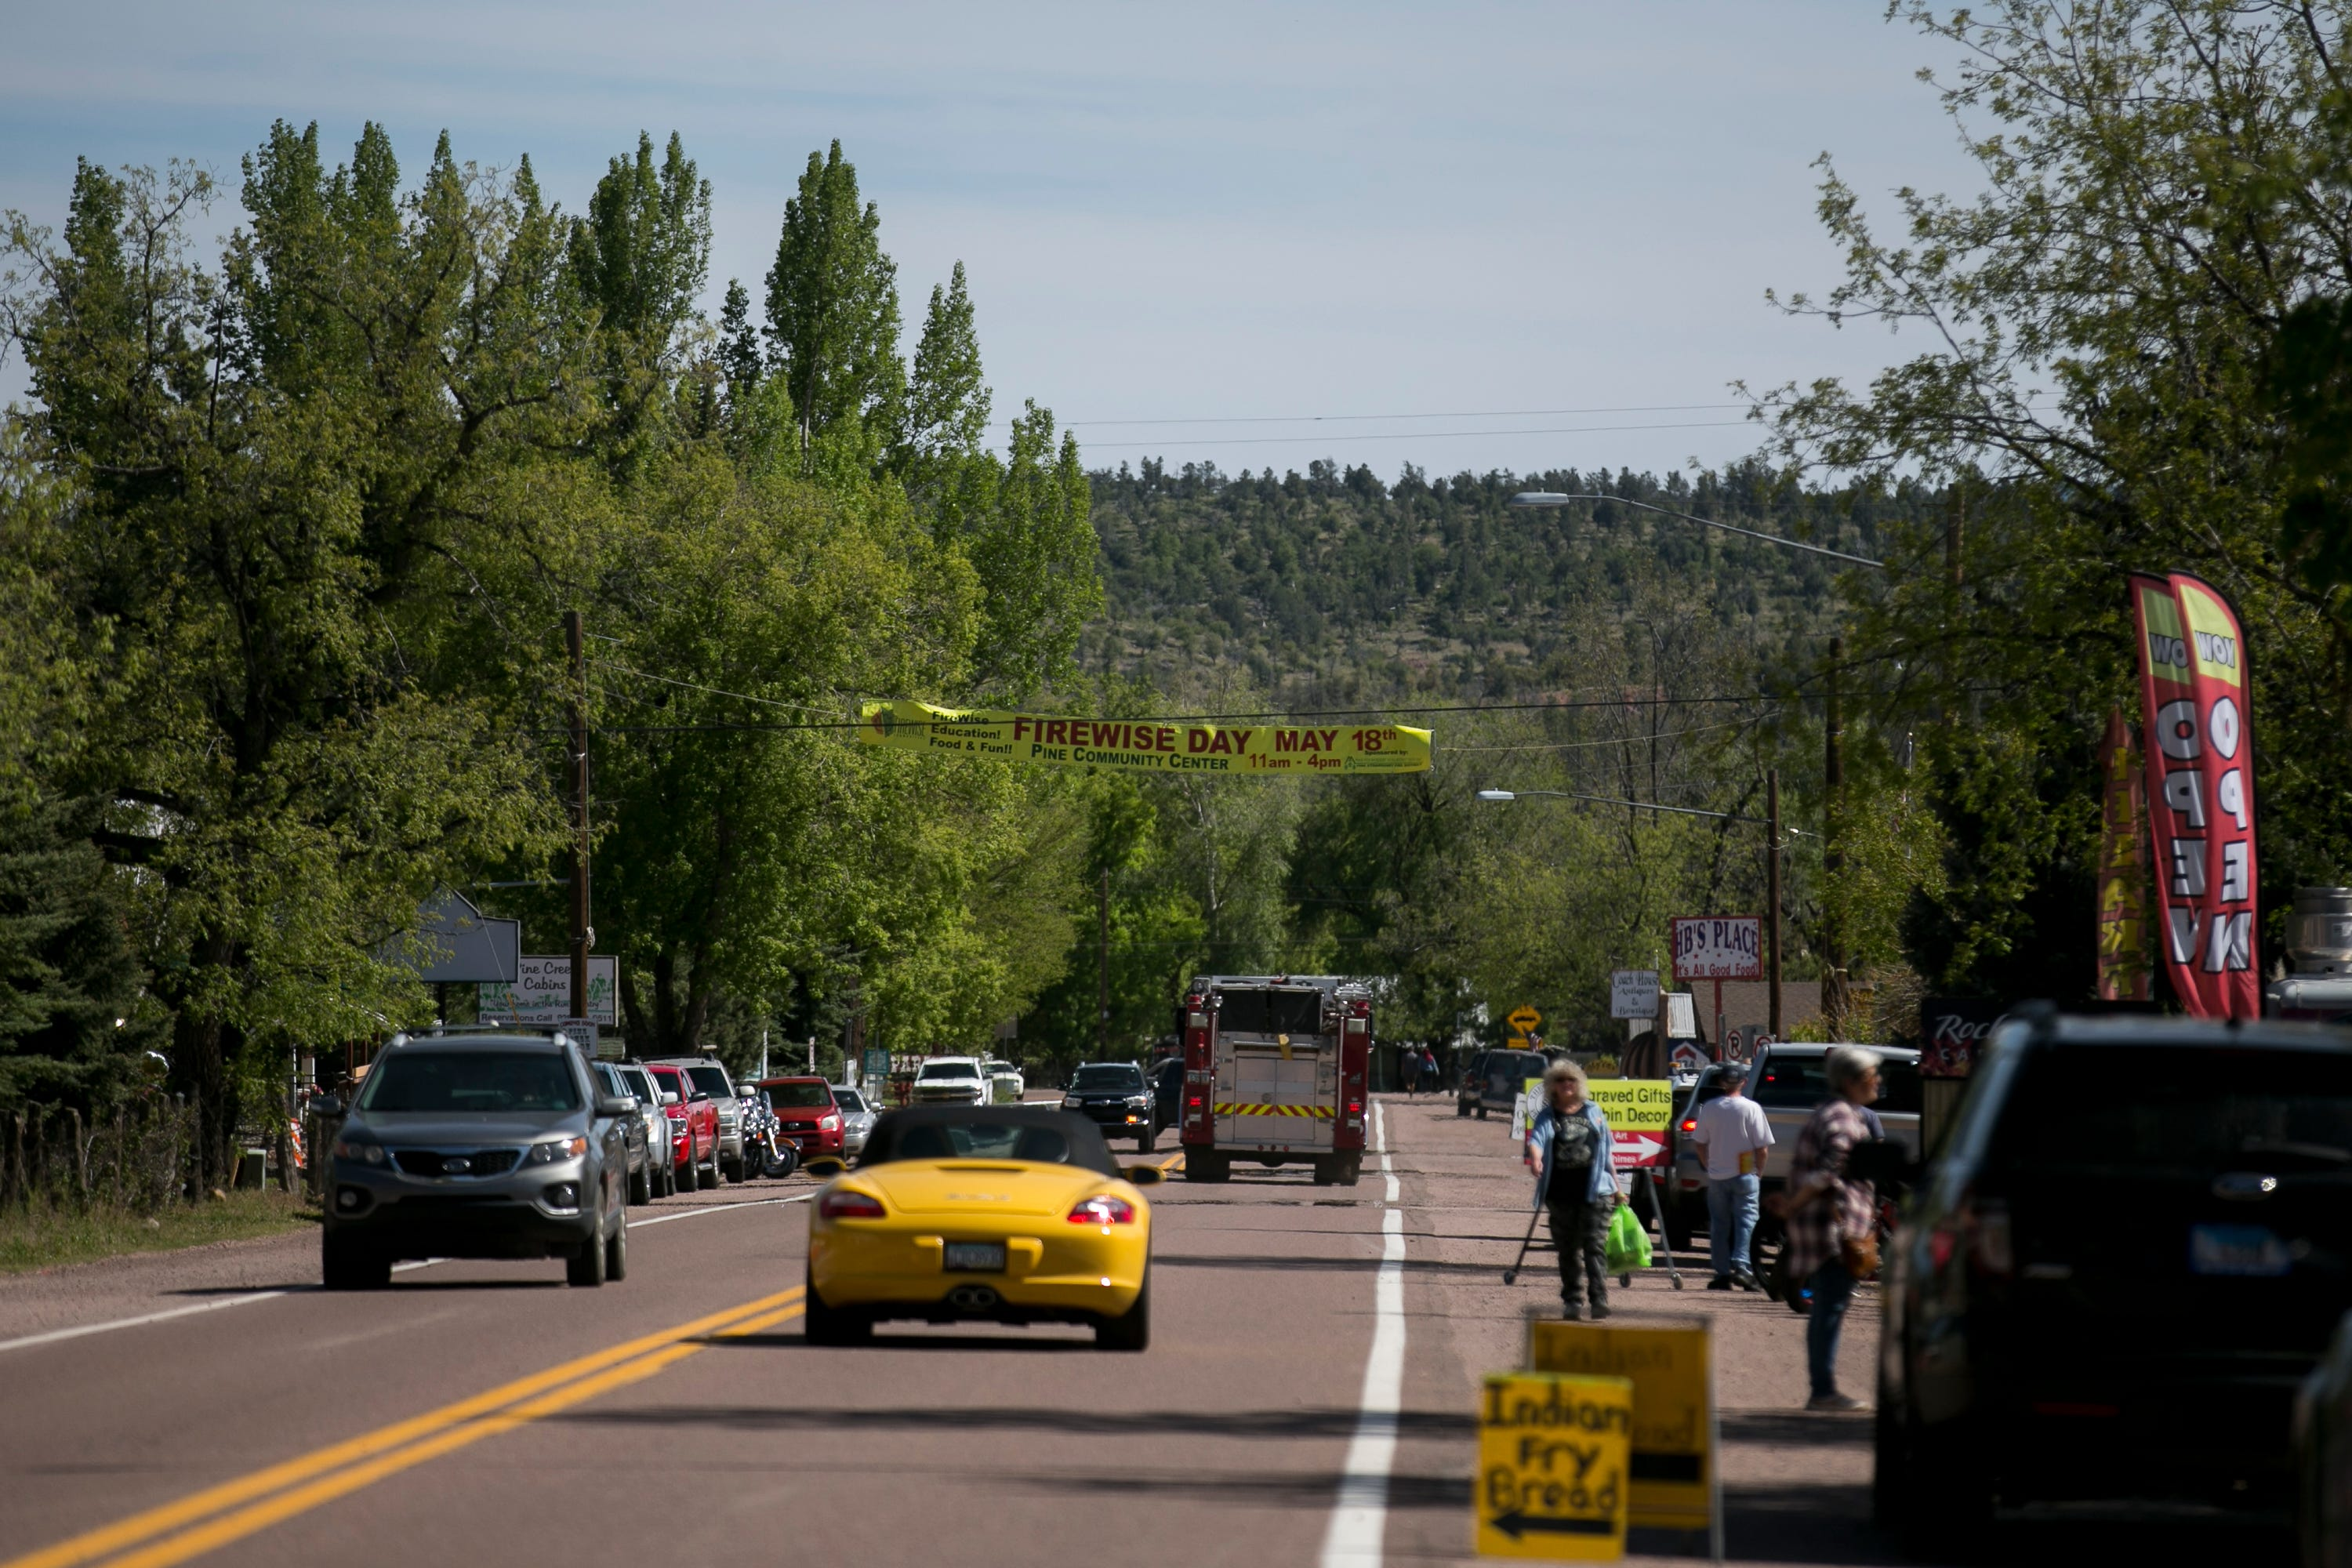 """A banner for """"Firewise Day"""" hangs over the main business strip in Pine, Arizona. The annual event educates locals and visitors on keeping the area safe from fires."""